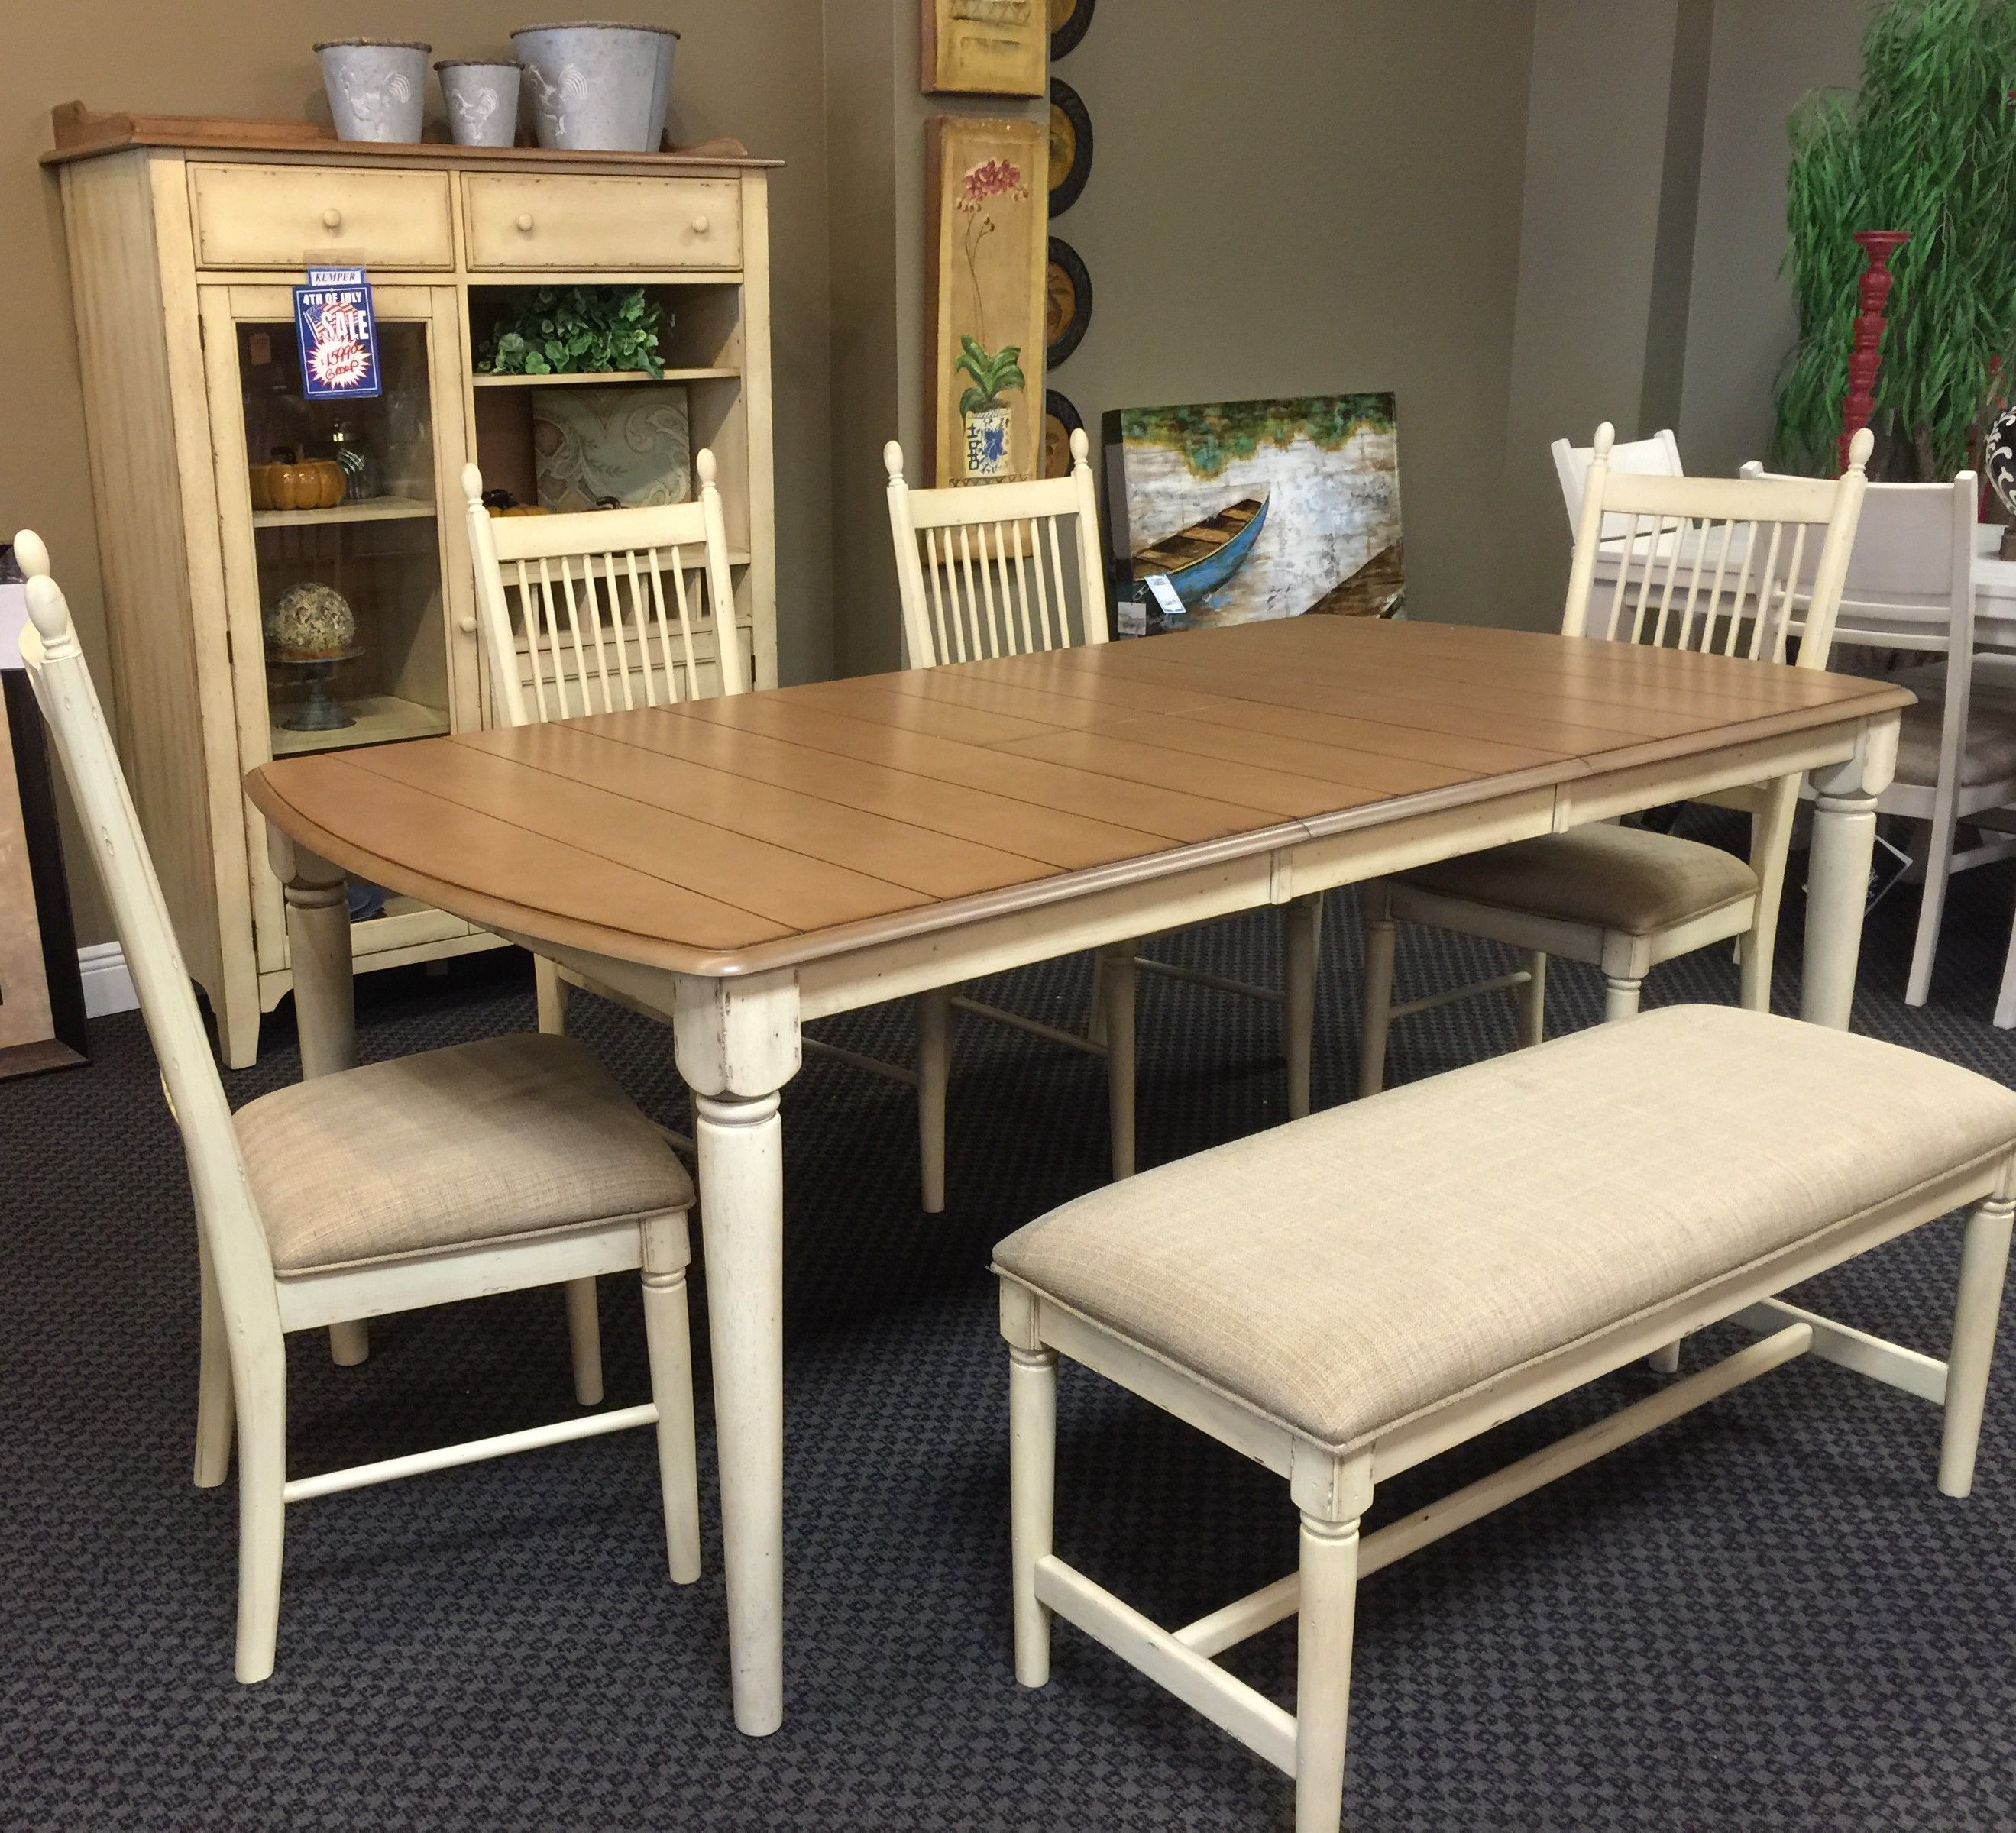 Liberty 157 dining table chairs bench hutch all for only